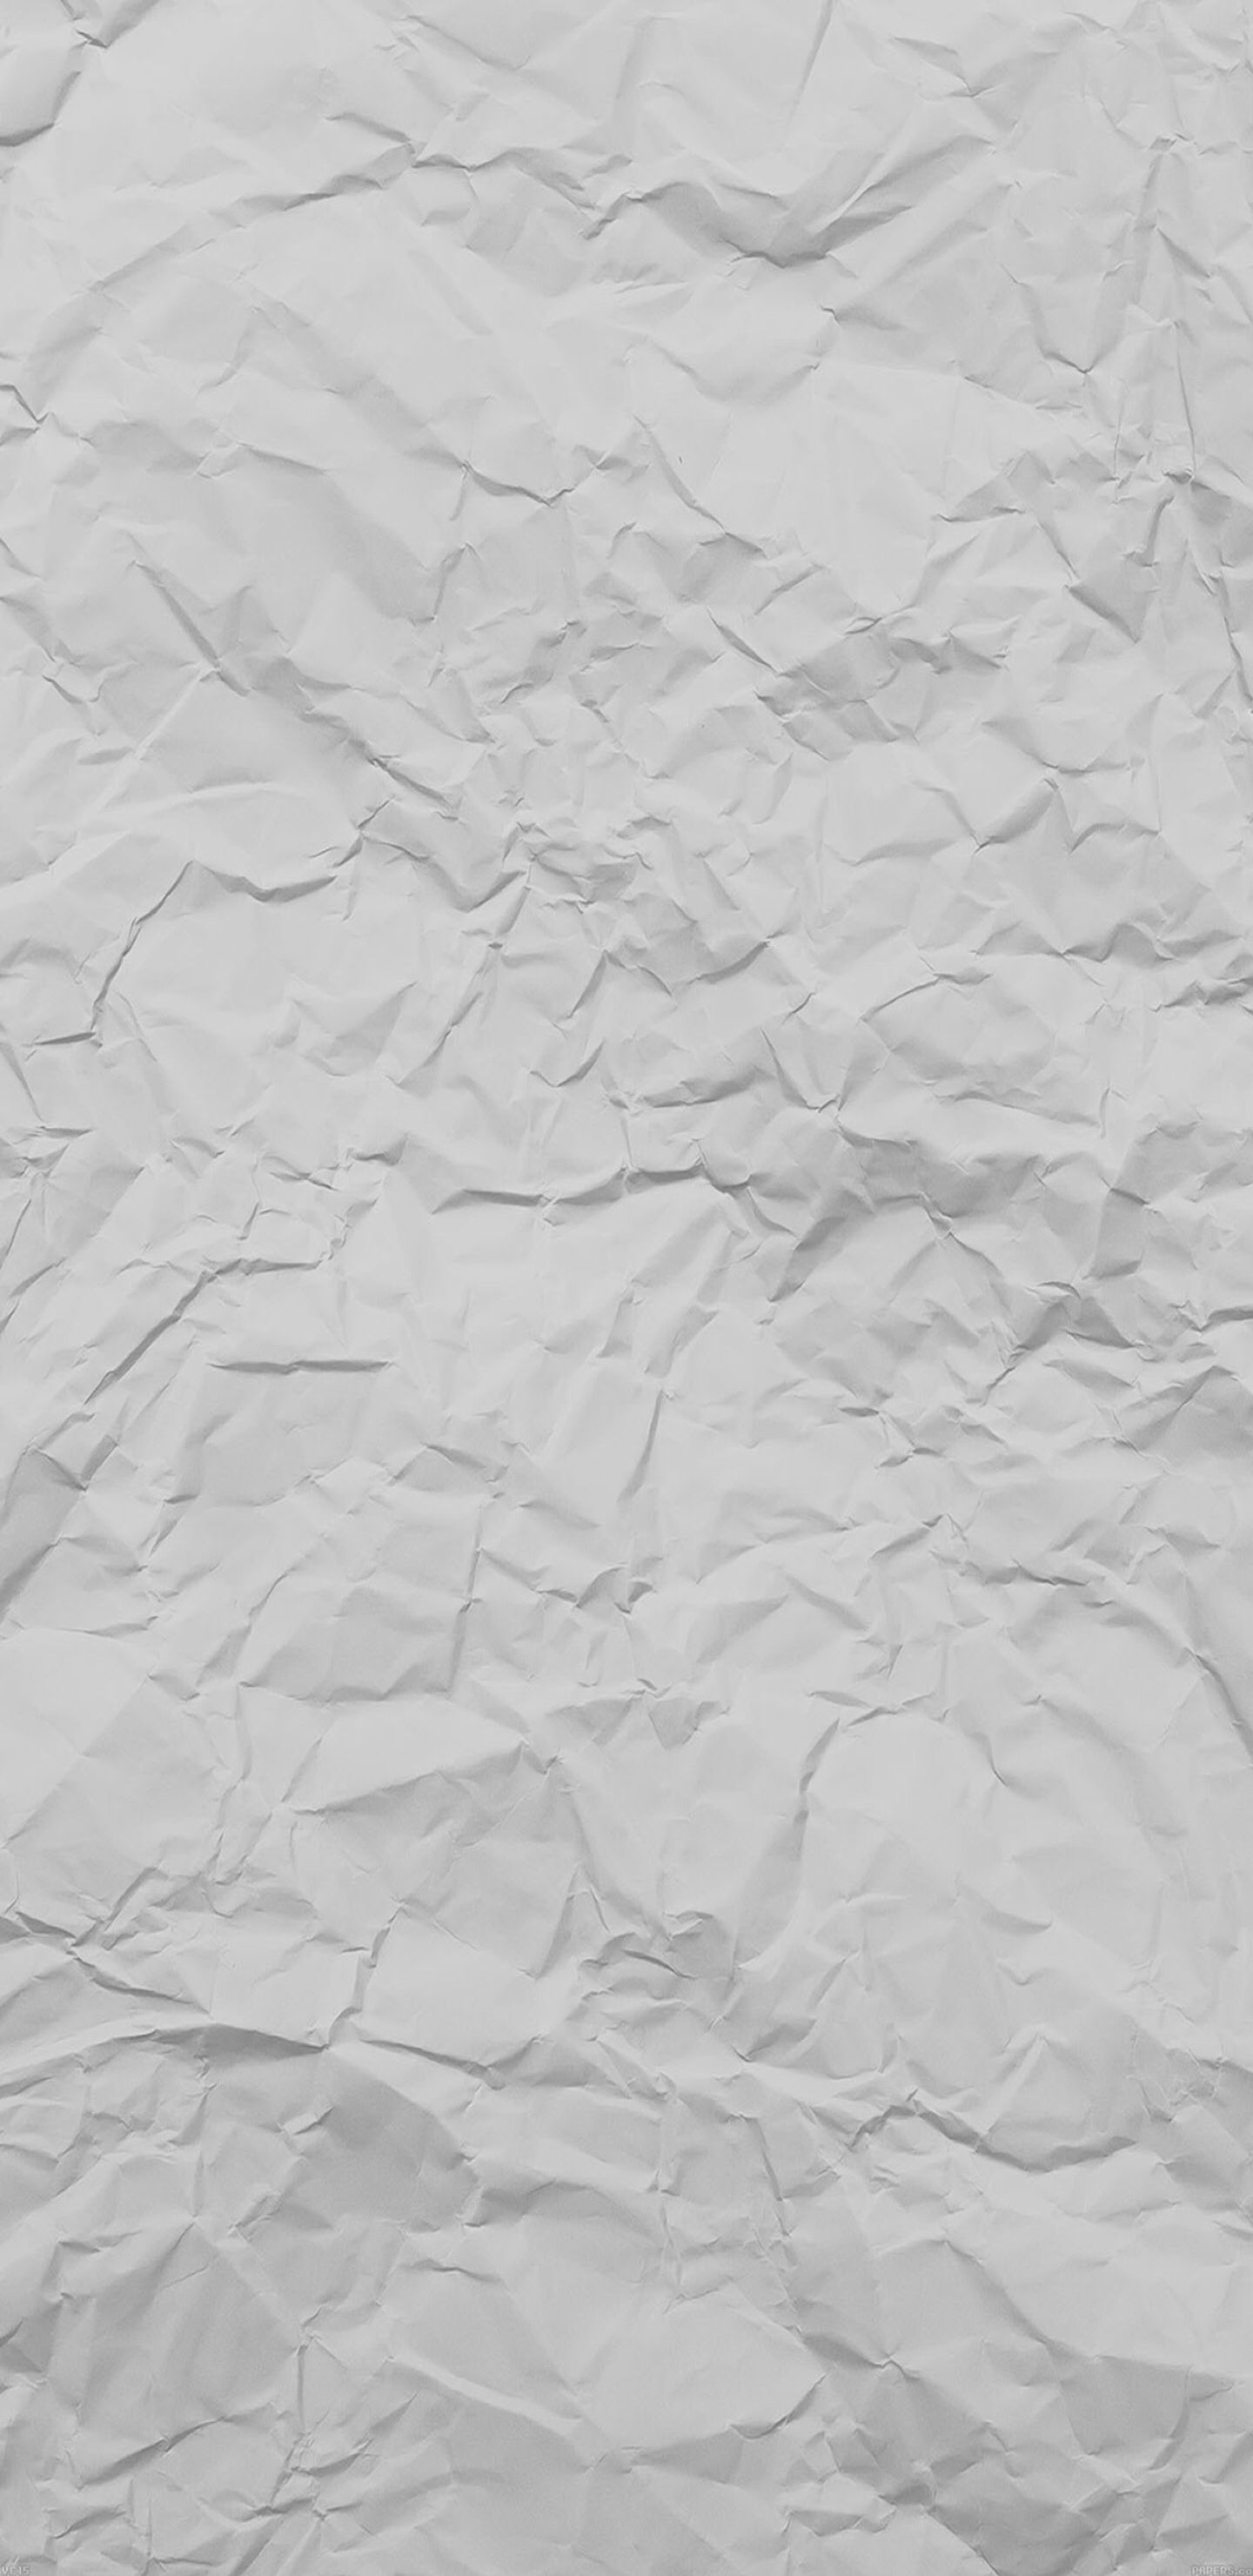 S8 Wallpaper Background Paper Texture Calming White Minimal Grey Galaxy Samsung Paper Texture Wallpaper Paper Background Texture Textured Wallpaper